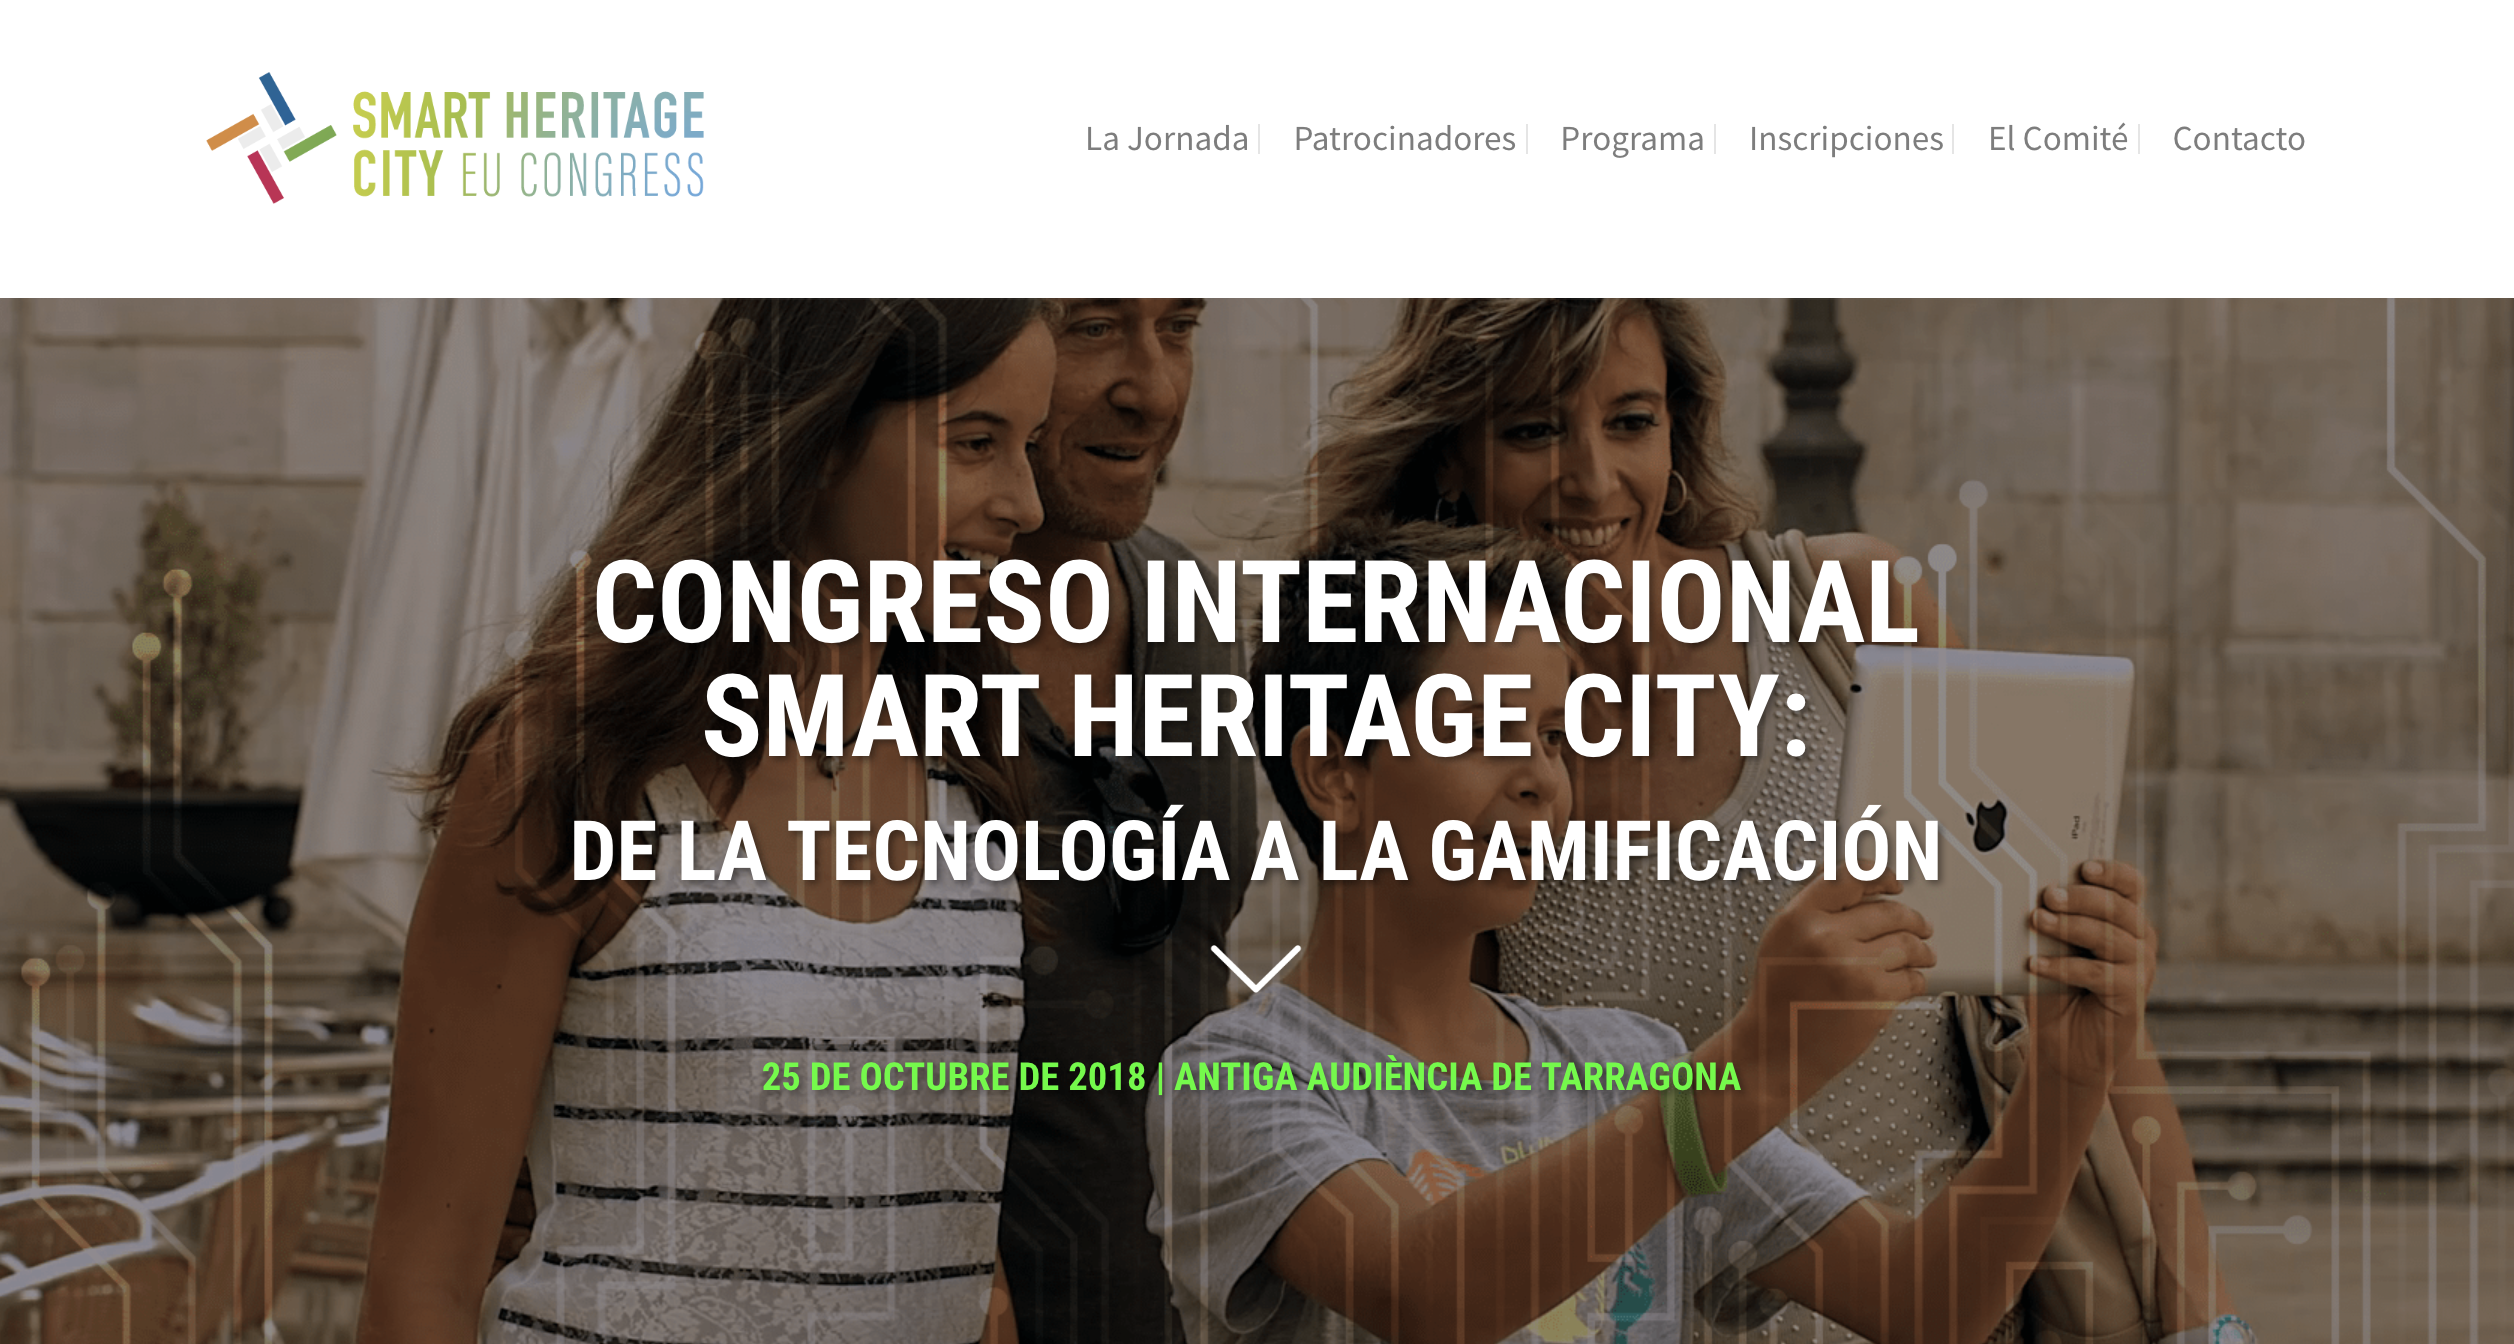 PlayVisit_SmartCities_Heritage_Tarragona_gamification_technology